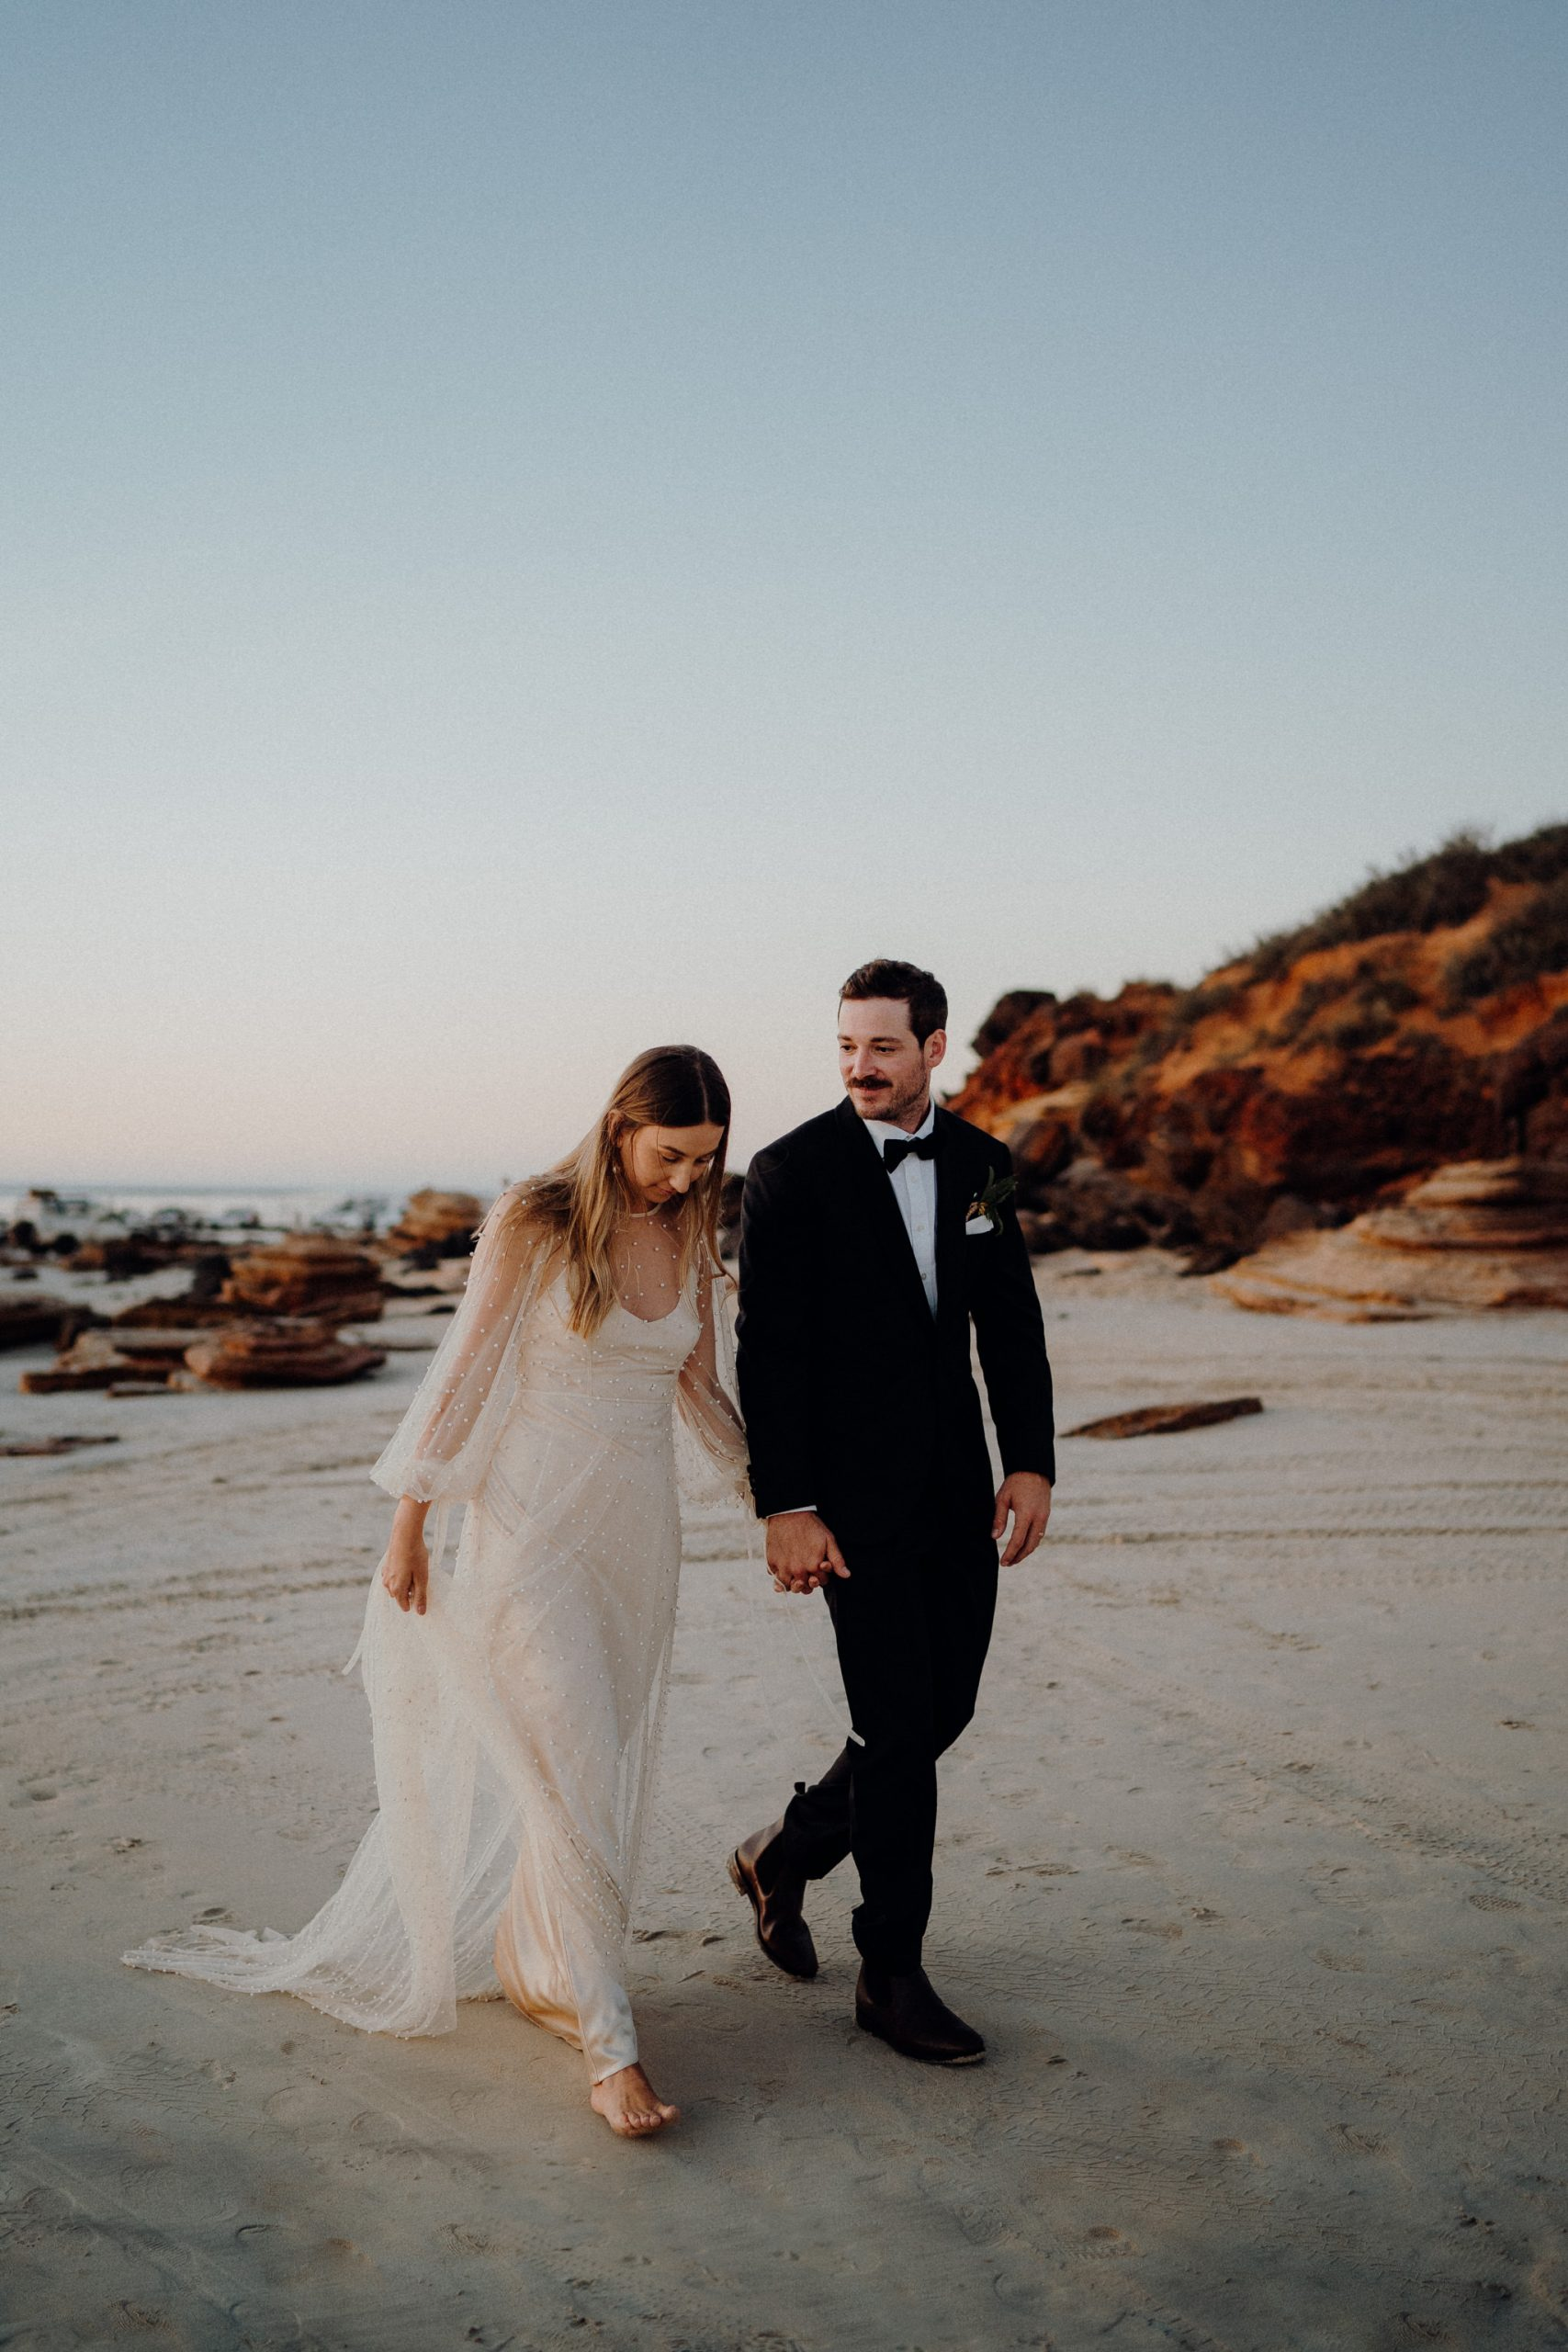 young wedding couple dressed up in suits and dress walking hand in hand on Cable Beach towards their wedding reception at Cable Beach Amphitheatre